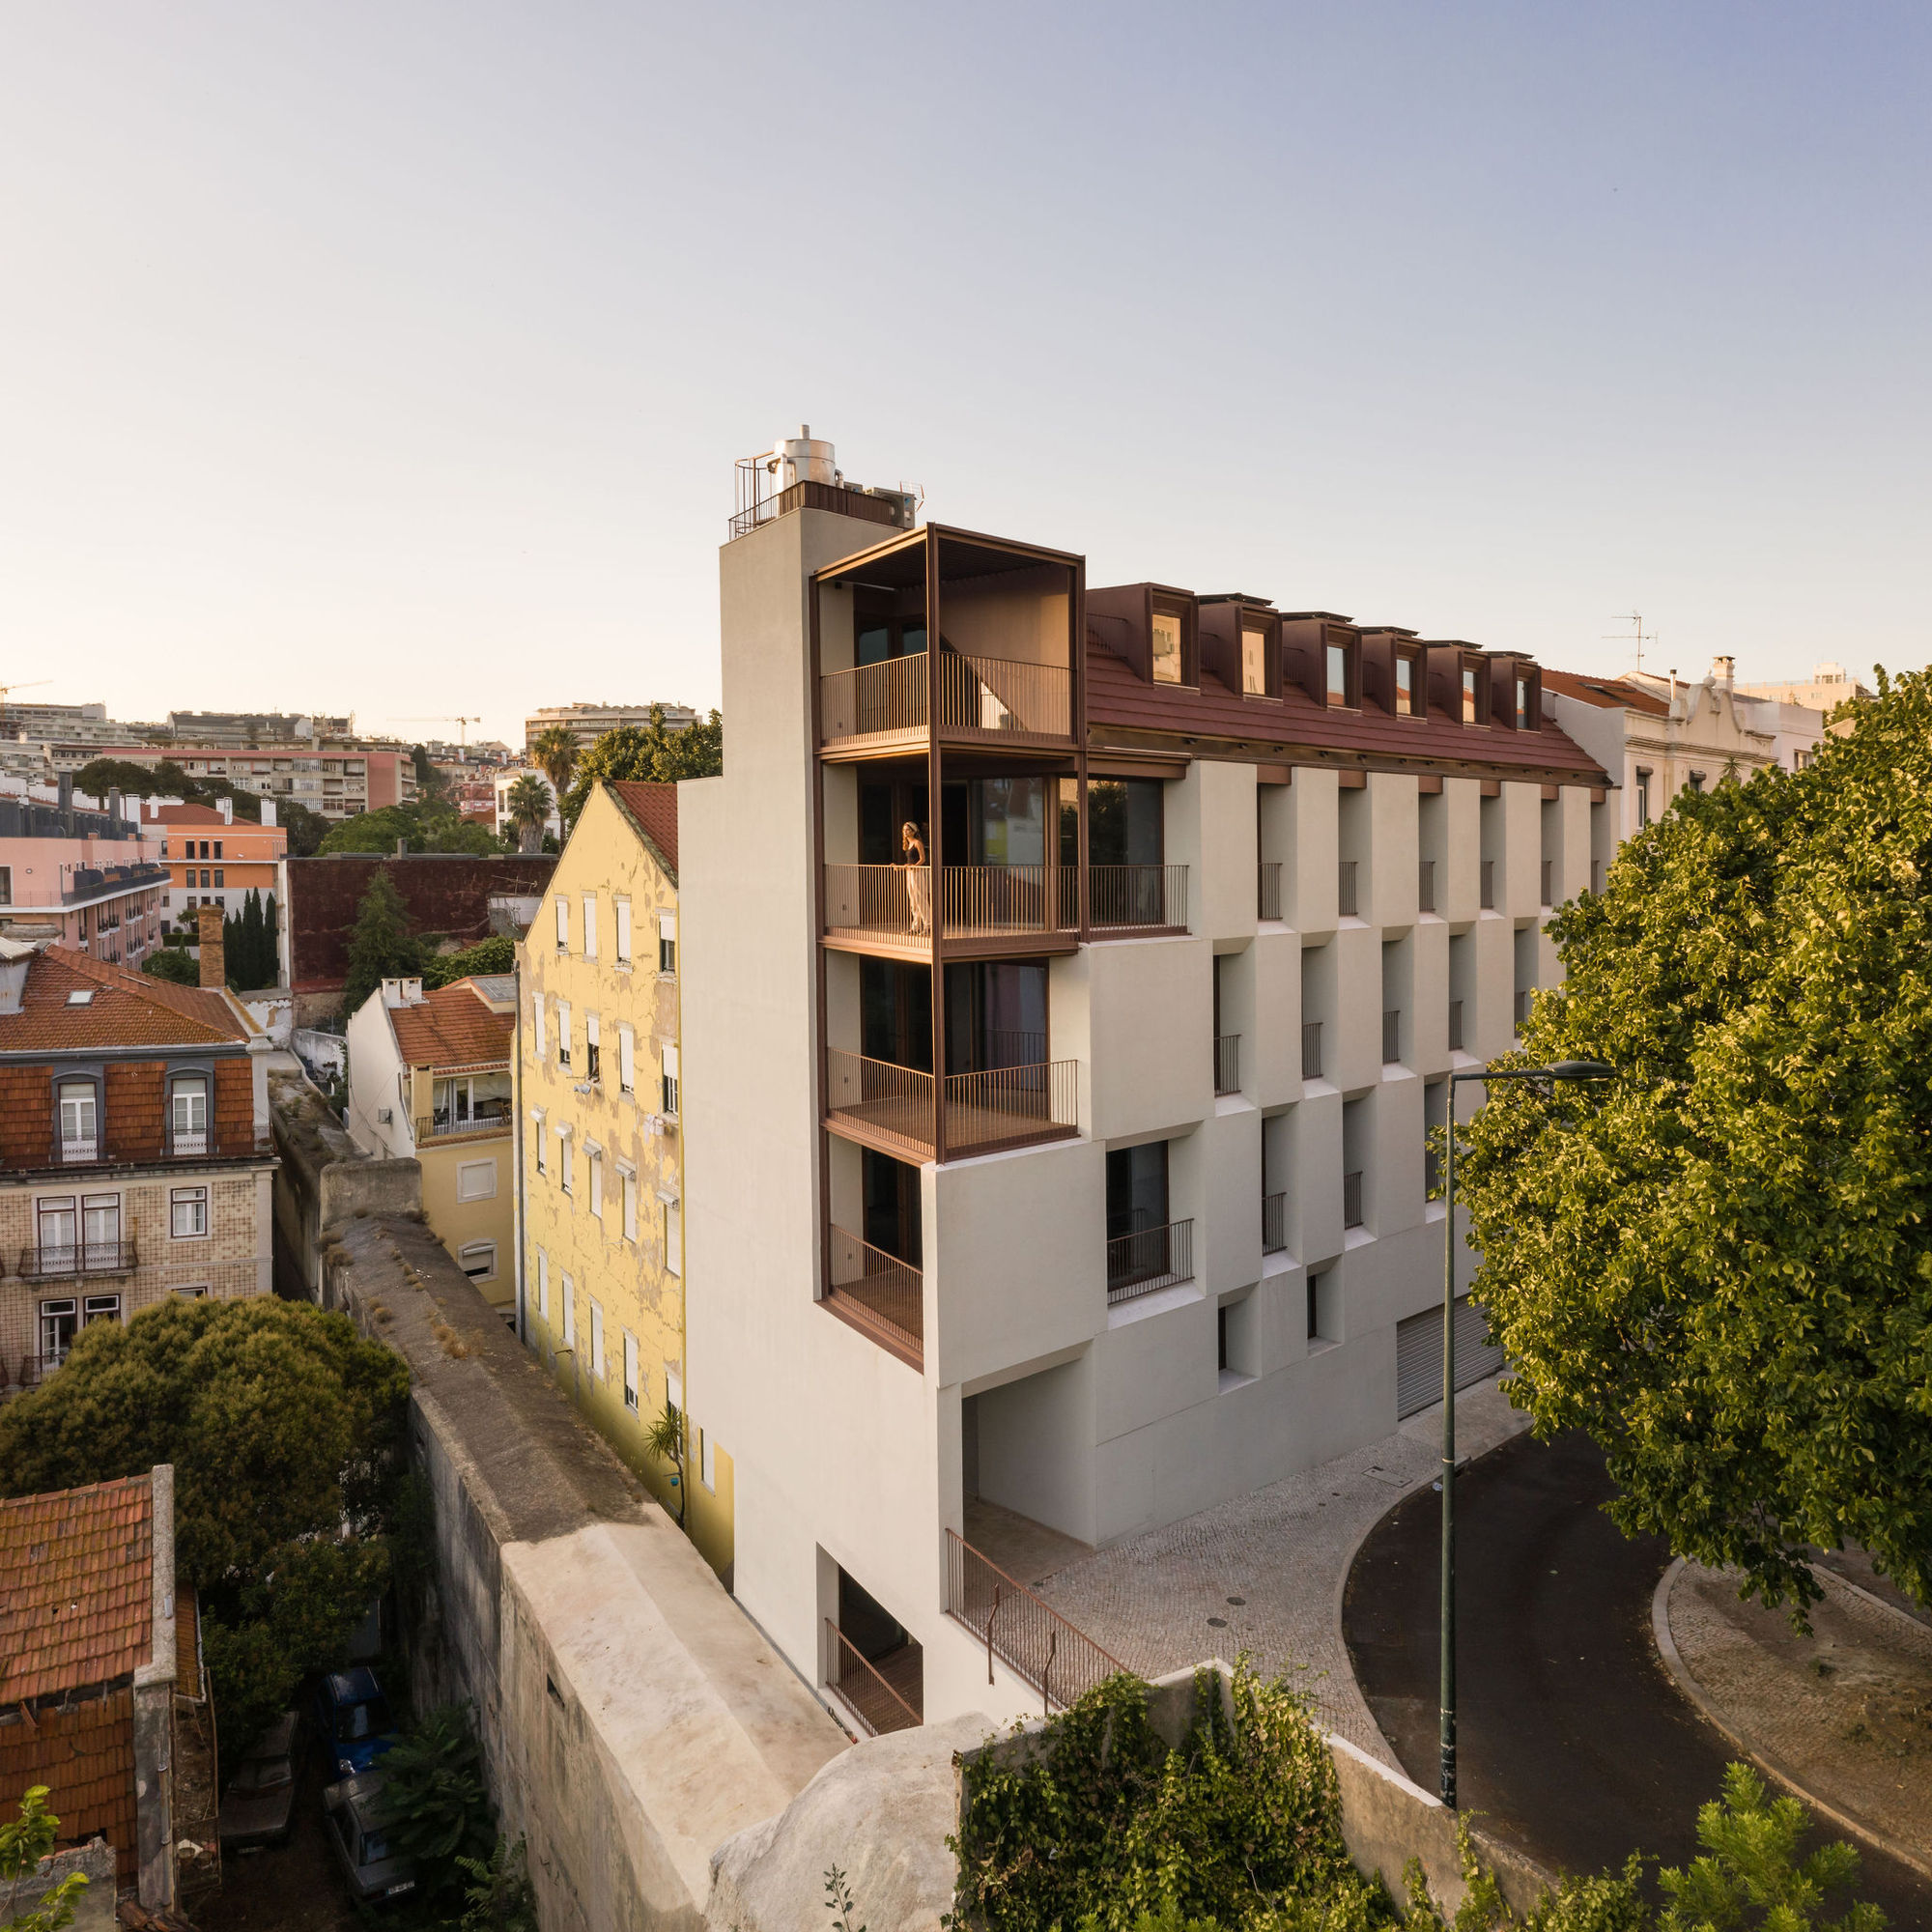 Residential Building by the Aqueduct / António Costa Lima Arquitectos